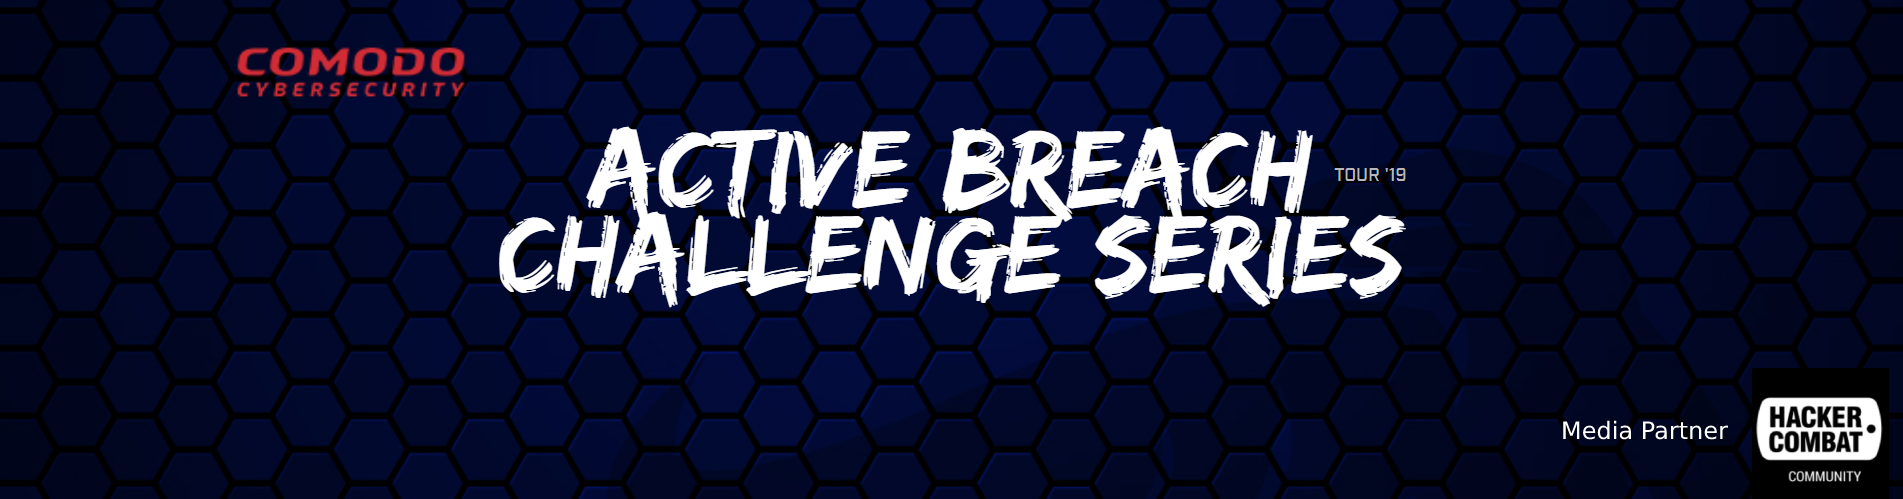 Active Breach Challenge Series